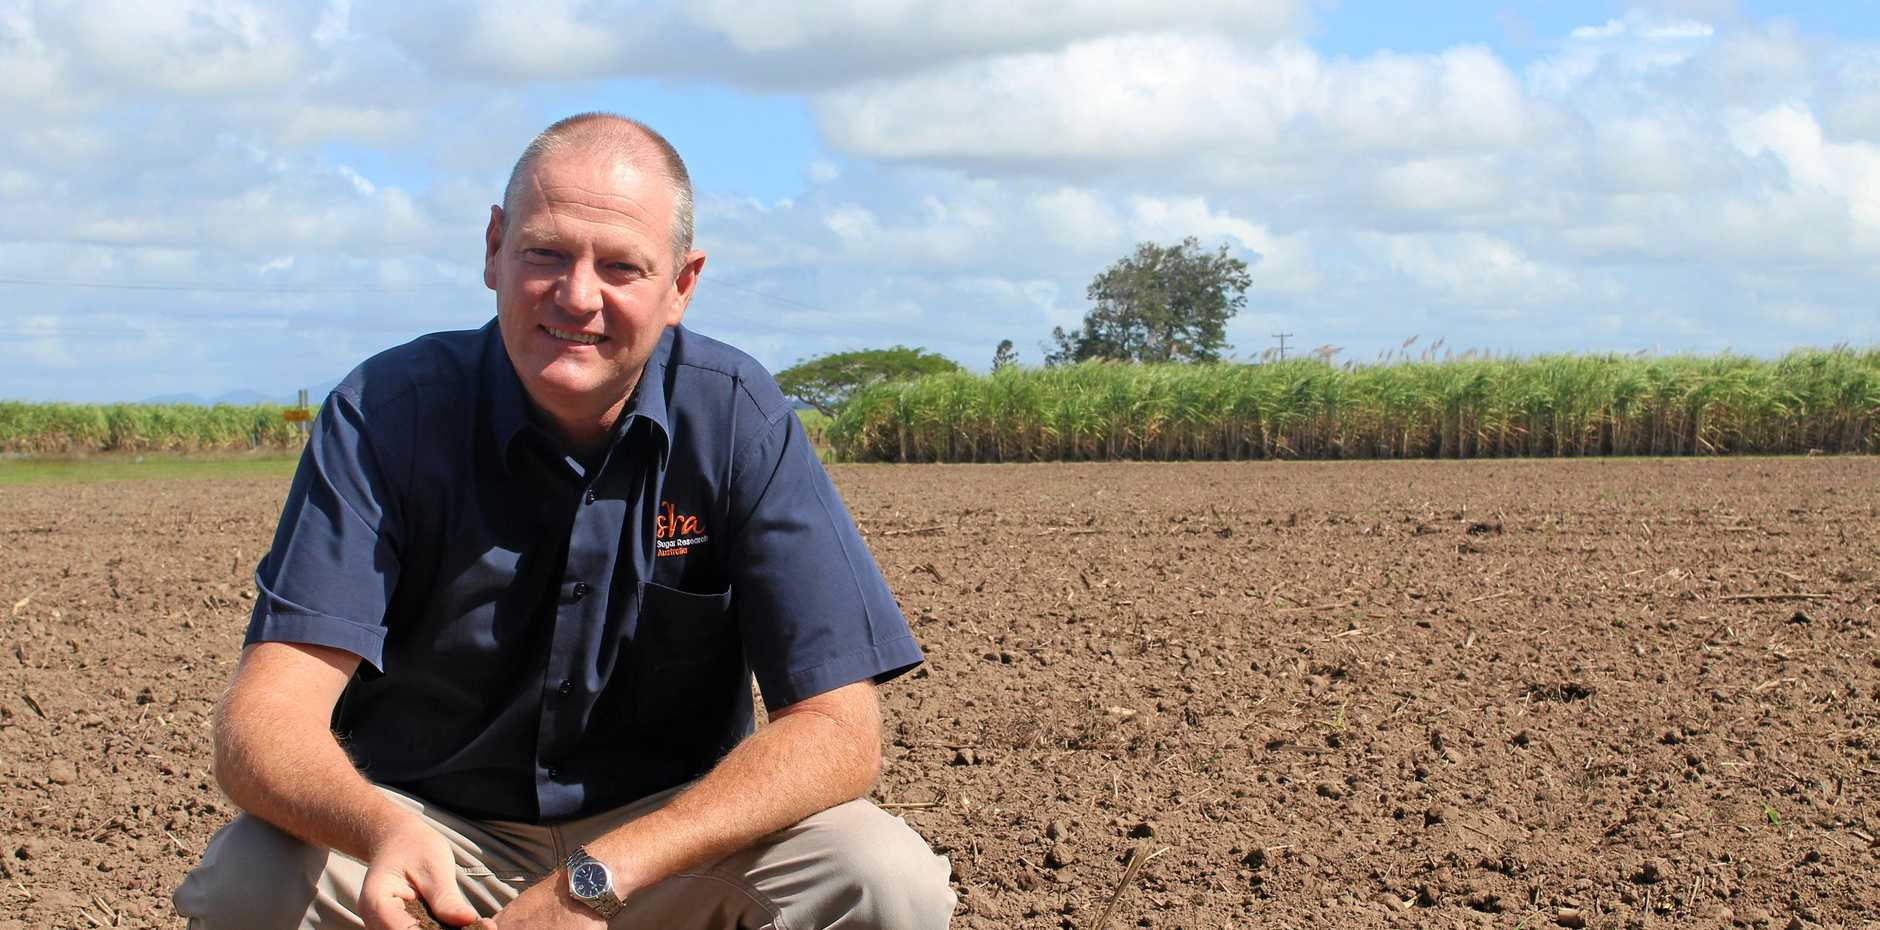 Dr Barry Salter is starting a research project on enriching soil with a variety of crops.